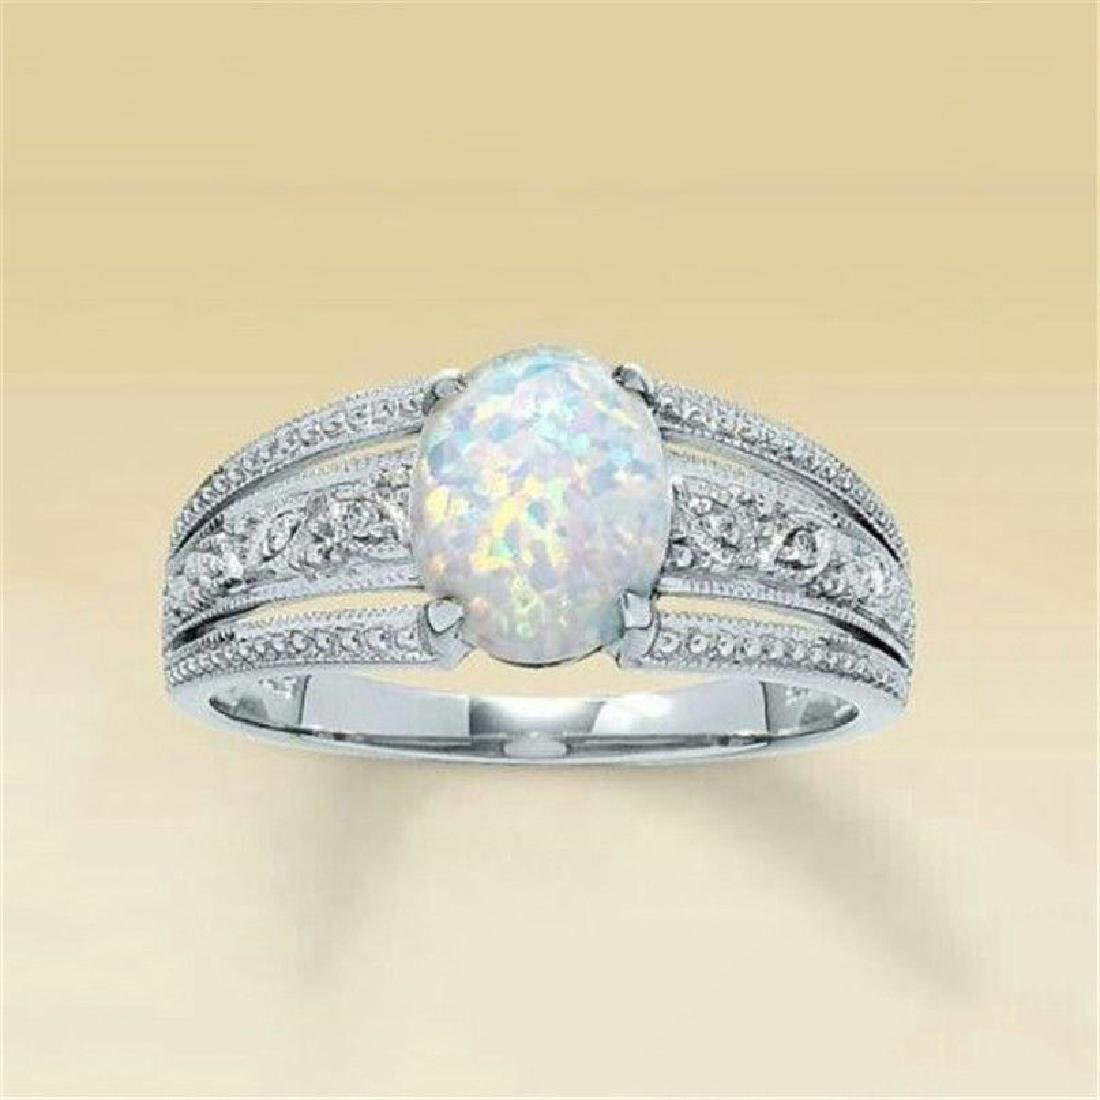 2.3Ct White Fire Opal 925 Silver Ring Size 6